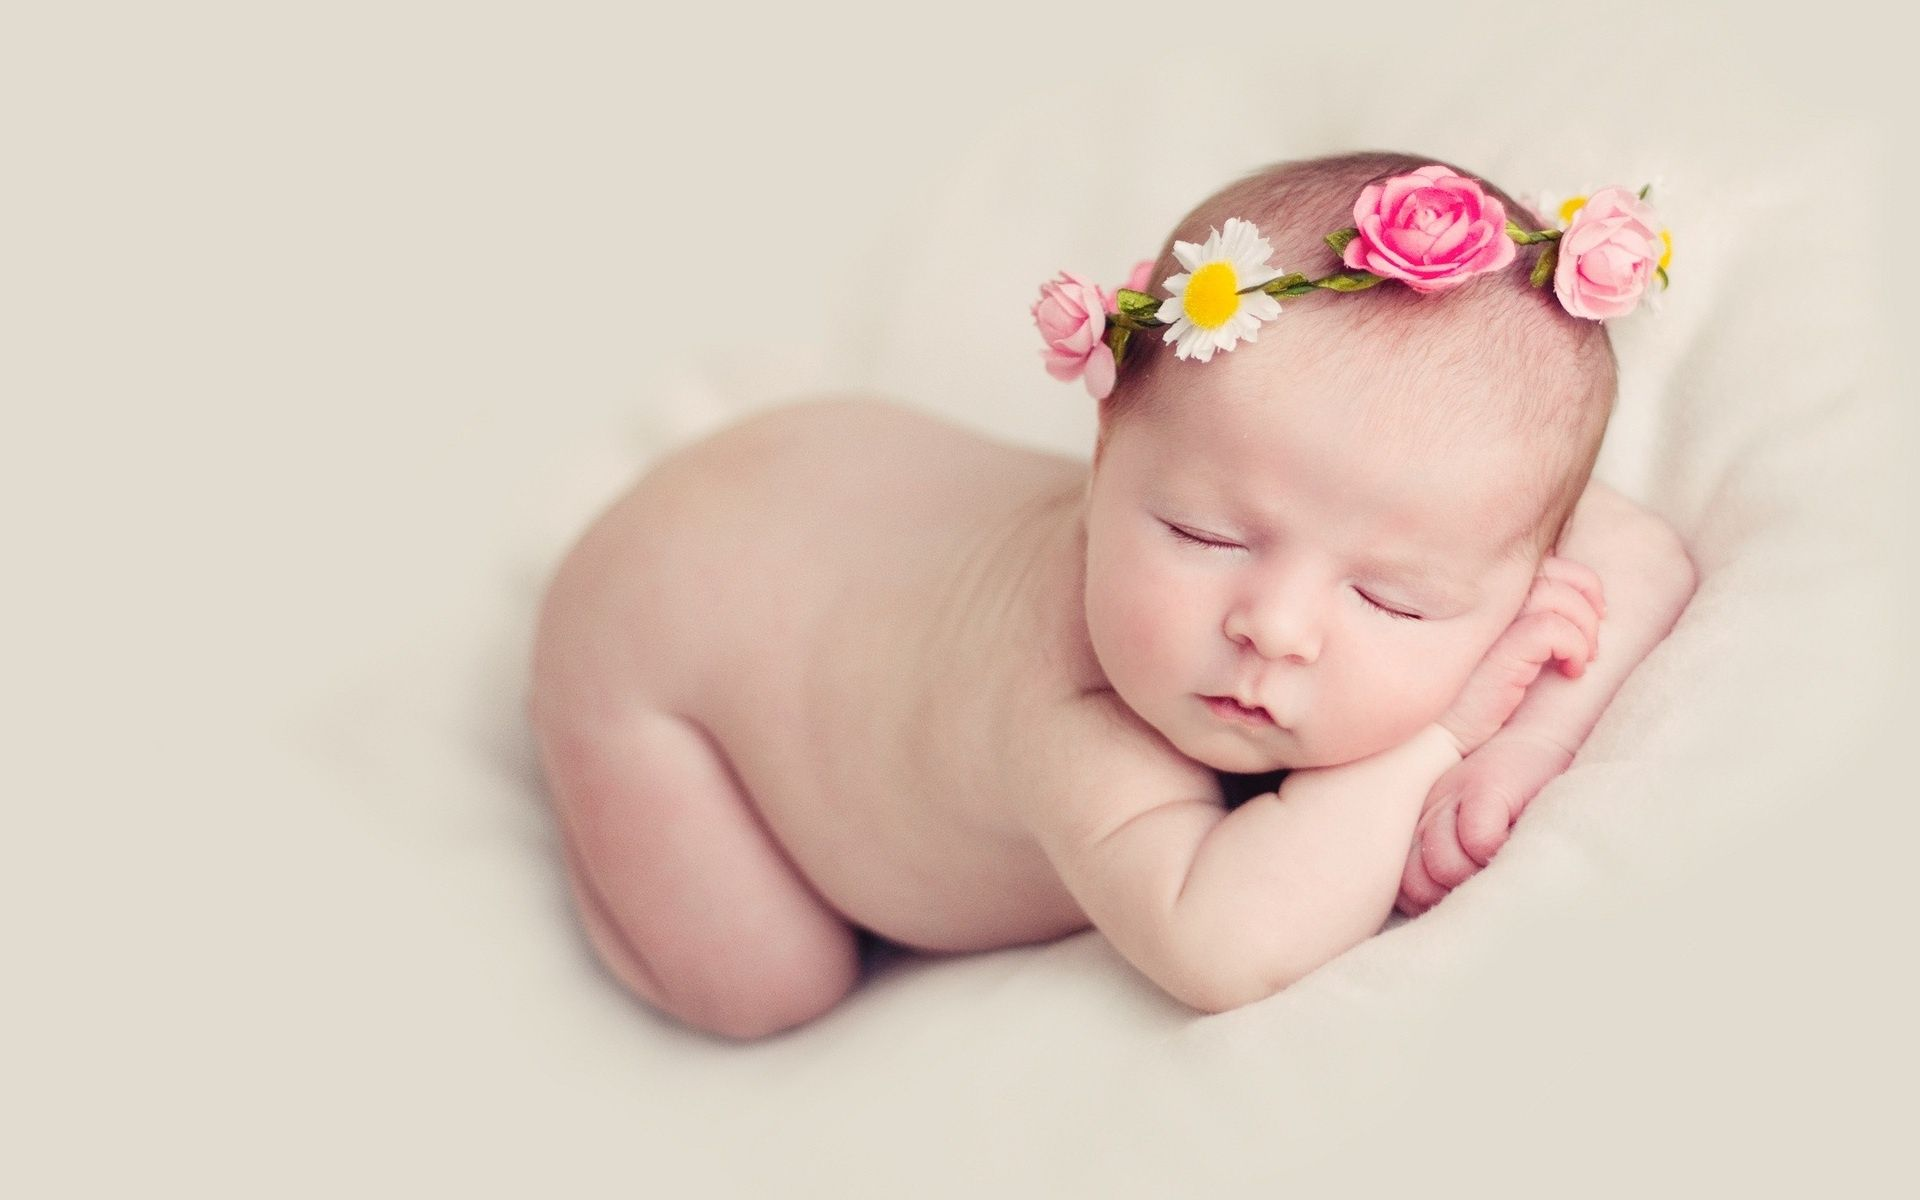 New born baby wallpaper of cute baby smile hd wallpaper